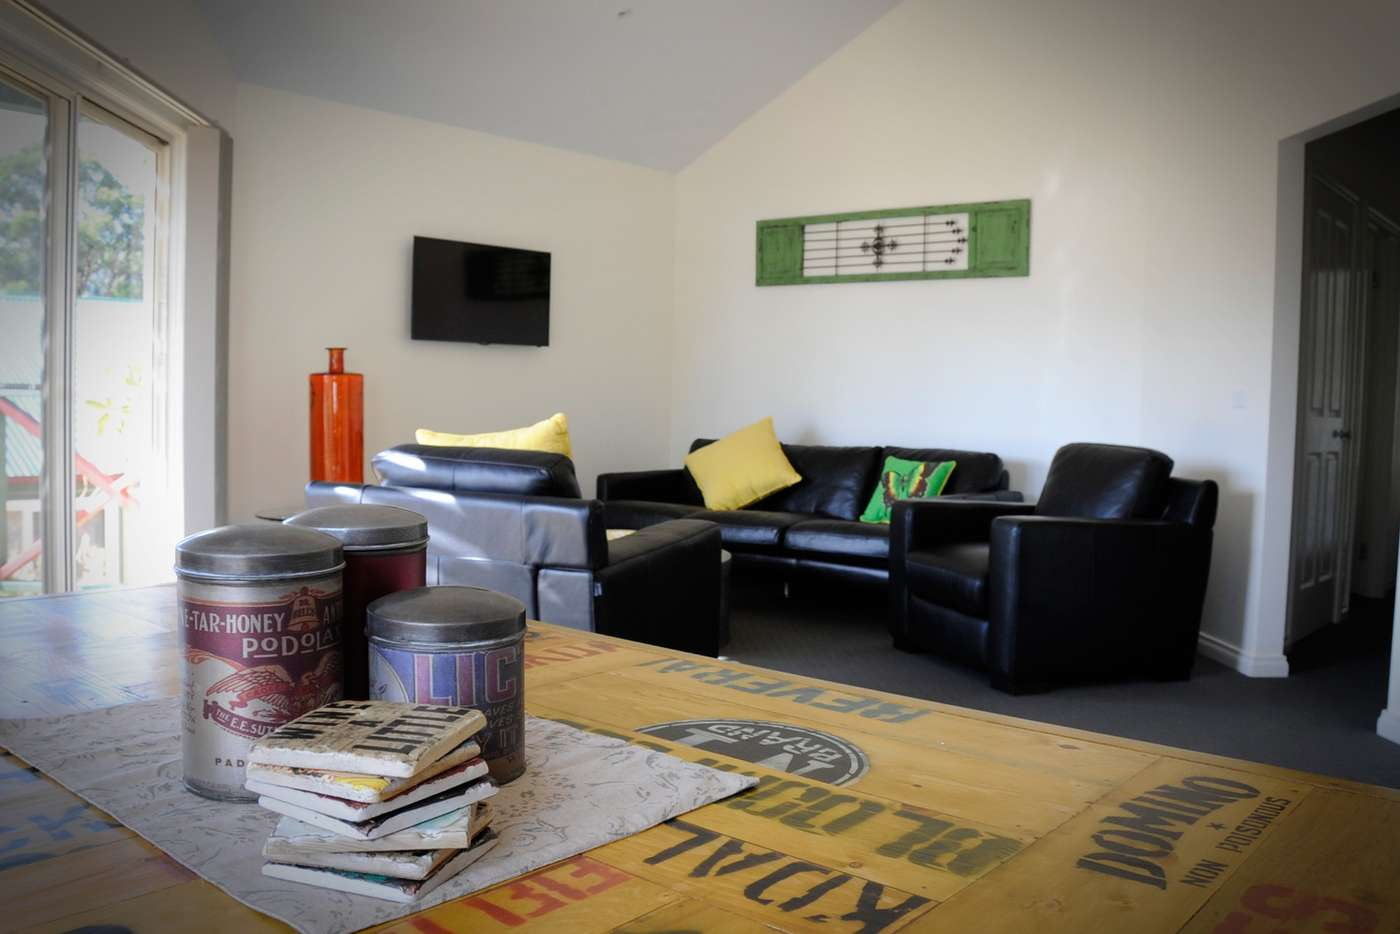 Main view of Homely house listing, 4/30 Lyell Street, Marysville VIC 3779